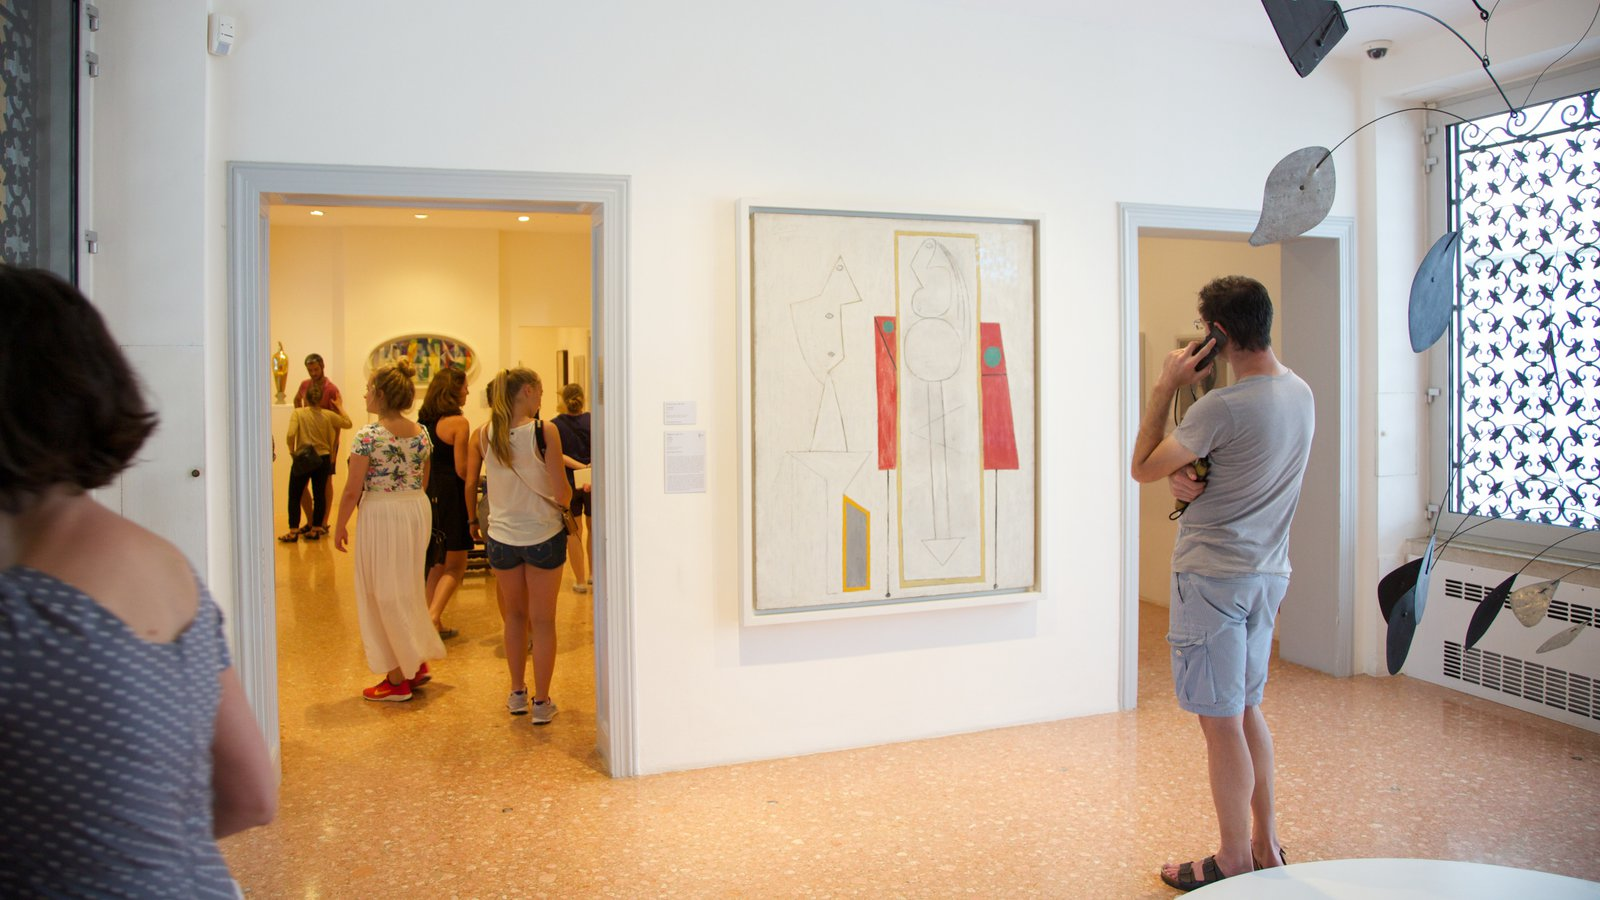 Peggy Guggenheim Museum featuring interior views and art as well as a small group of people